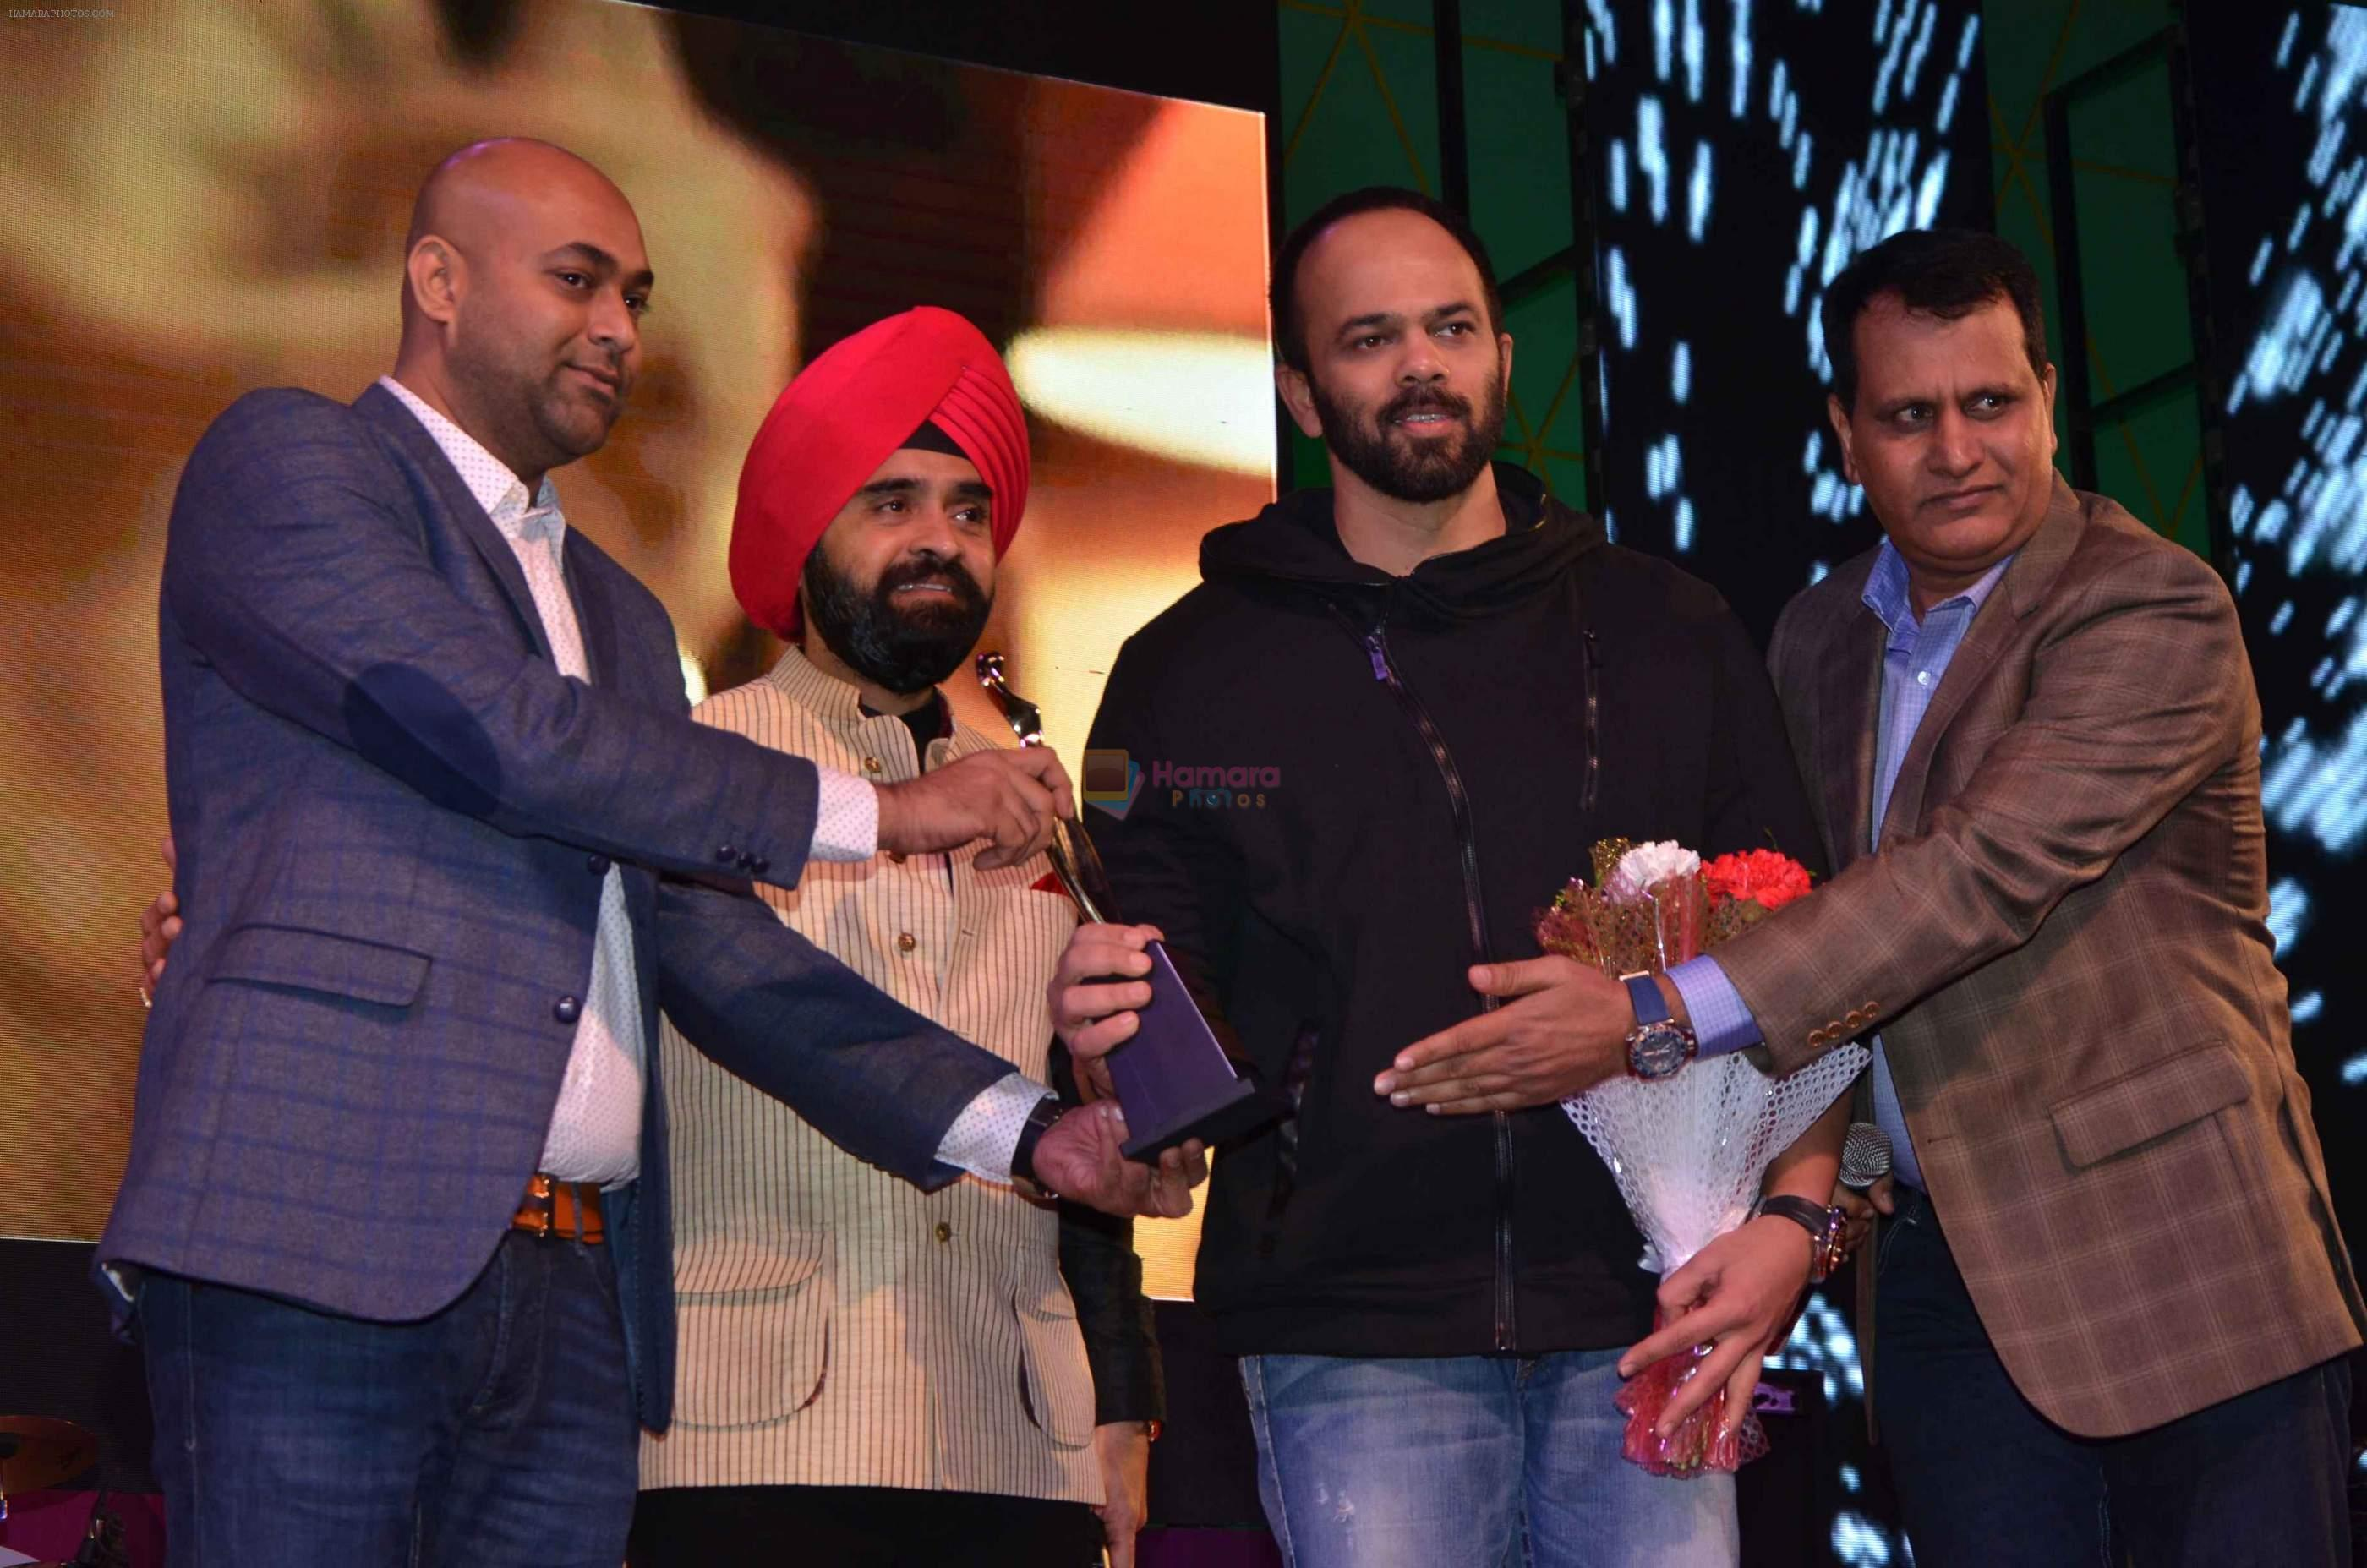 Rohit Shetty at Mulund Fest on 27th Dec 2015